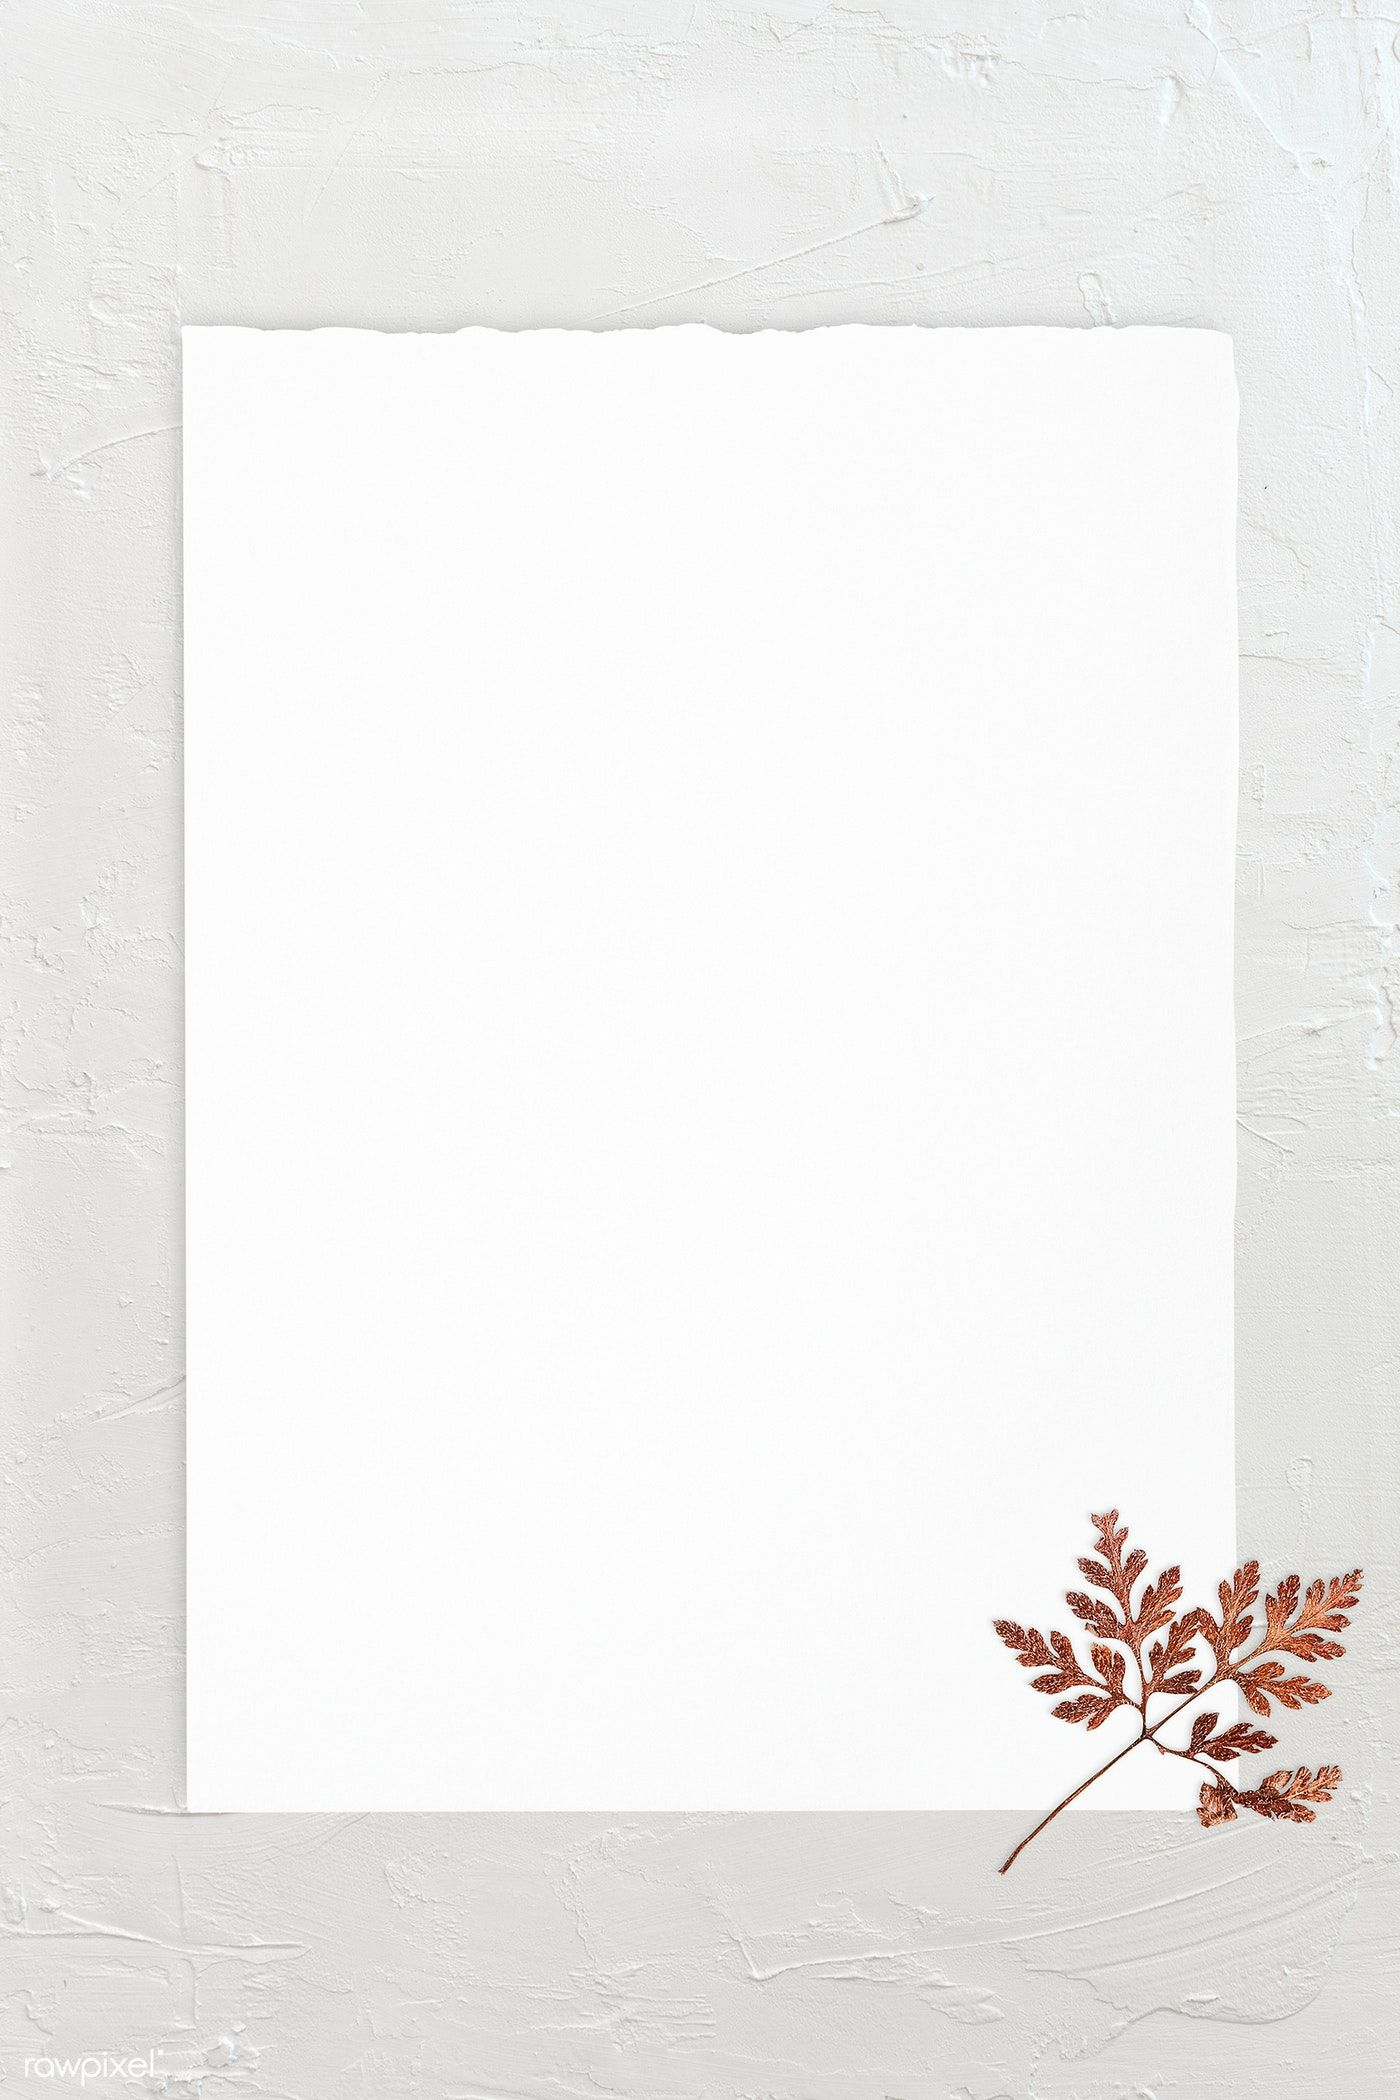 Download Premium Psd Of Blank White Paper Template With Dry Leaf 1201827 Paper Template Flower Background Wallpaper Paper Background Texture